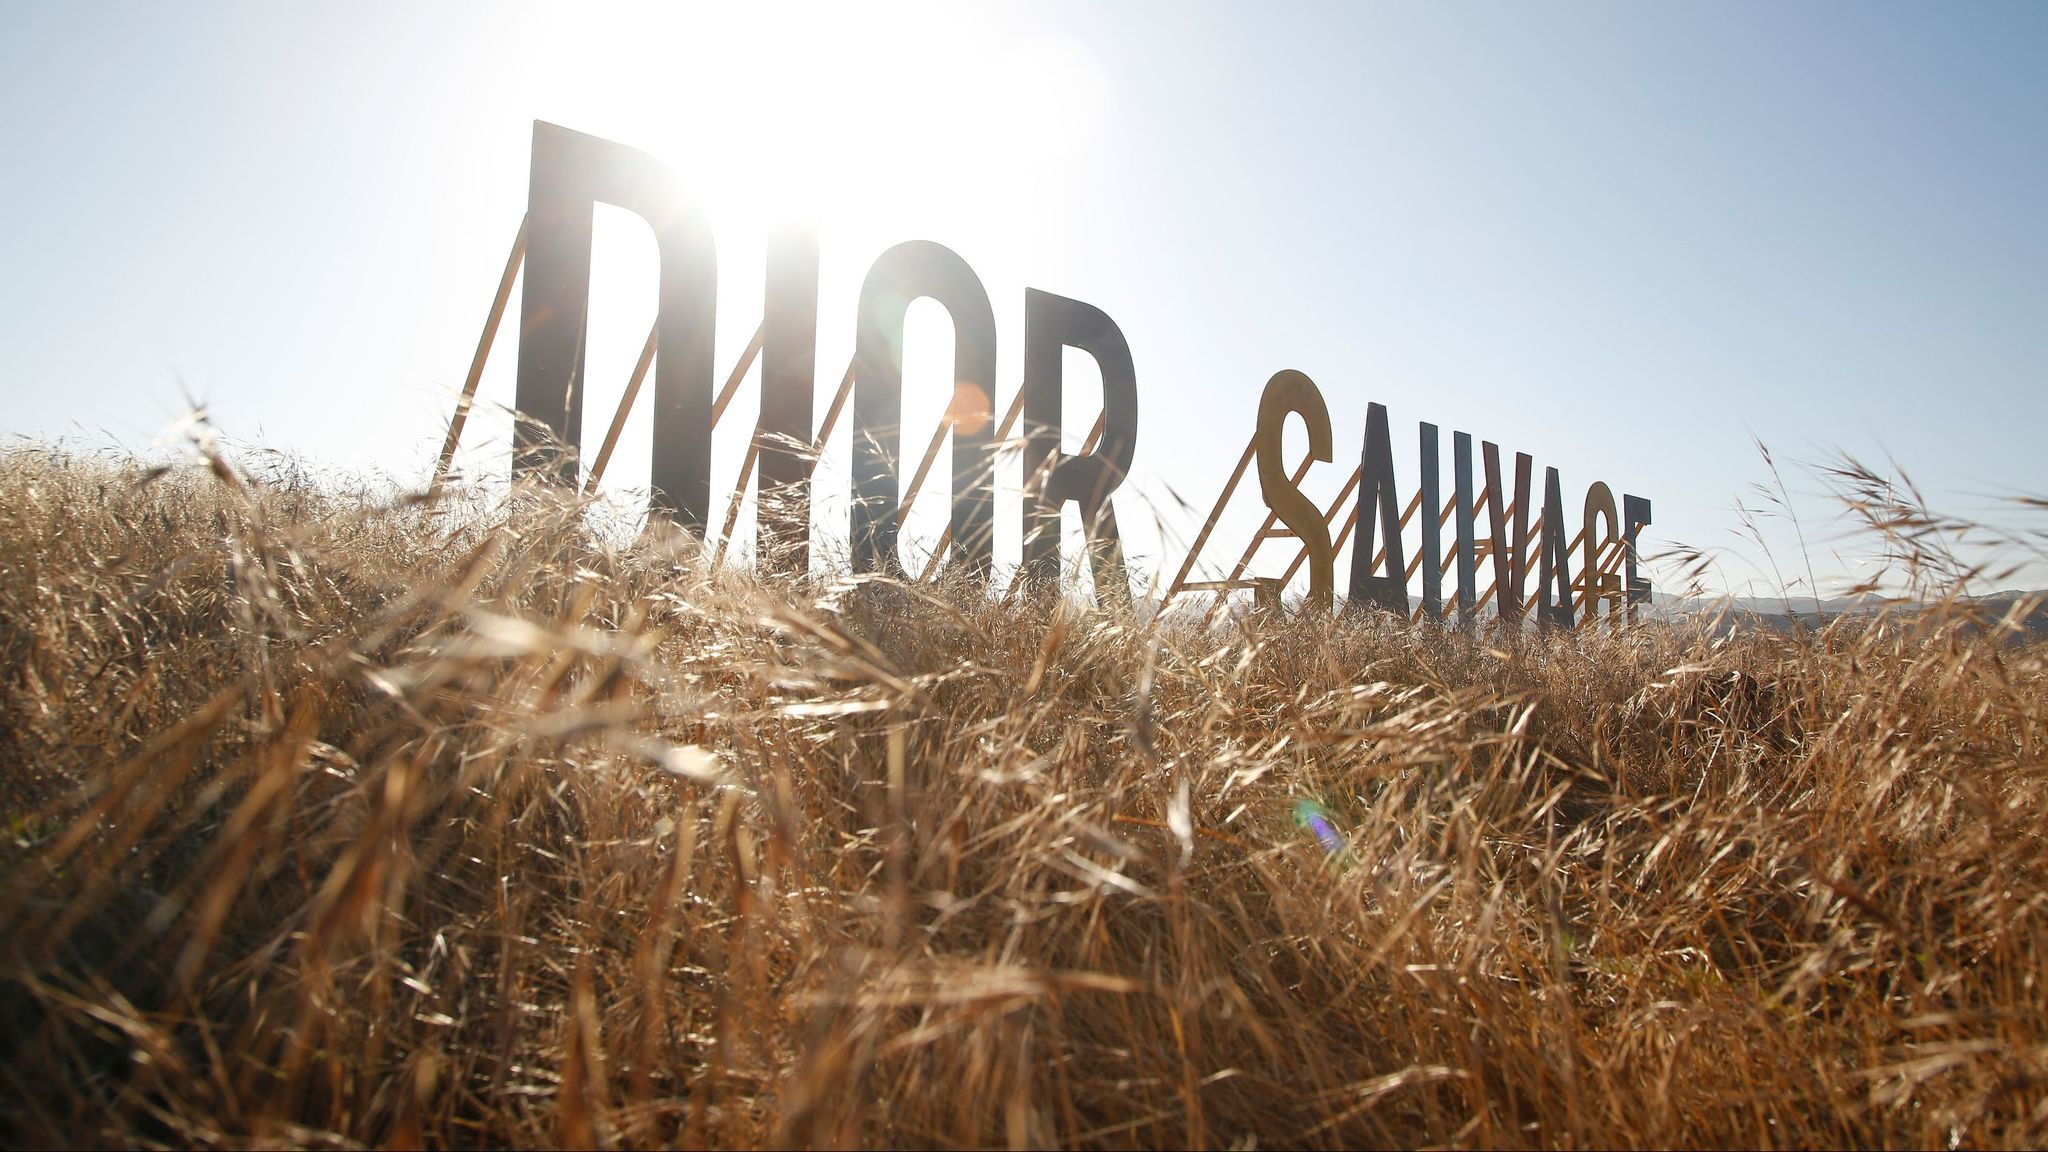 Letters displaying the name of the collection, Dior Sauvage, stand on a Calabasas hillside, one of many signs to mark the occasion, Dior's cruise collection presentation.